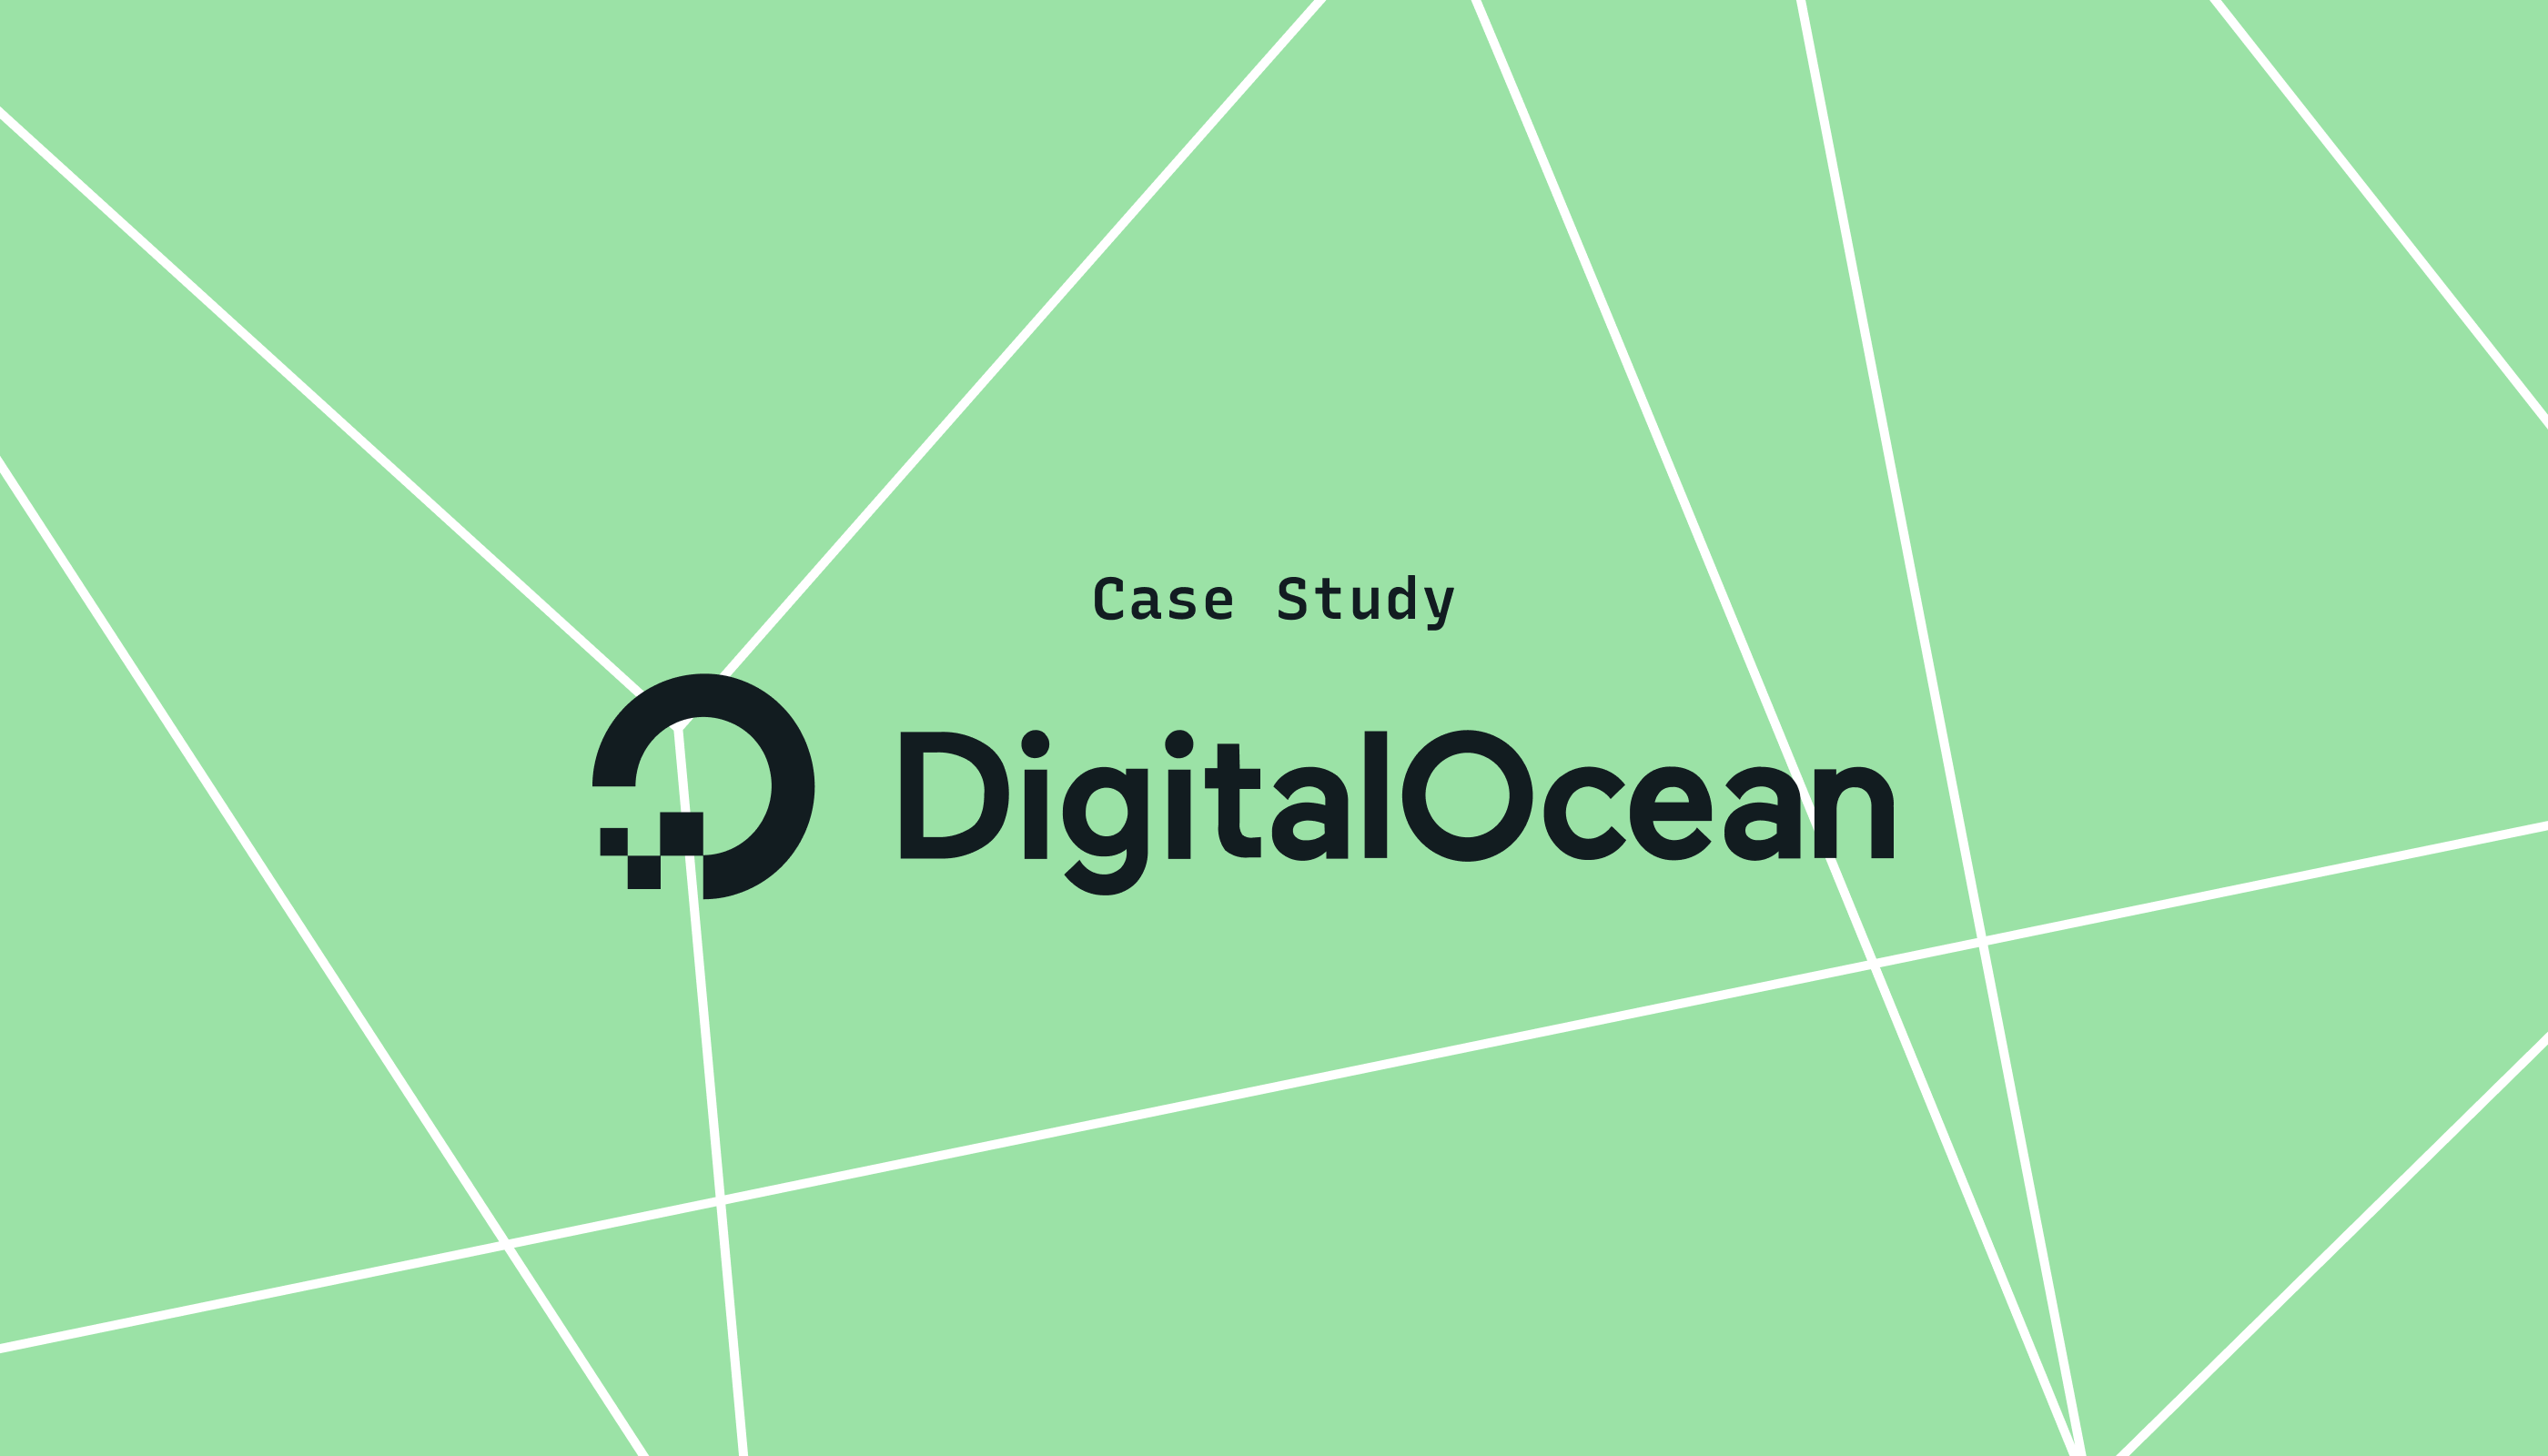 DigitalOcean uses Lightstep as a Source of Truth for its Distributed System, Saving 1000 Hours of Developer Time per Month